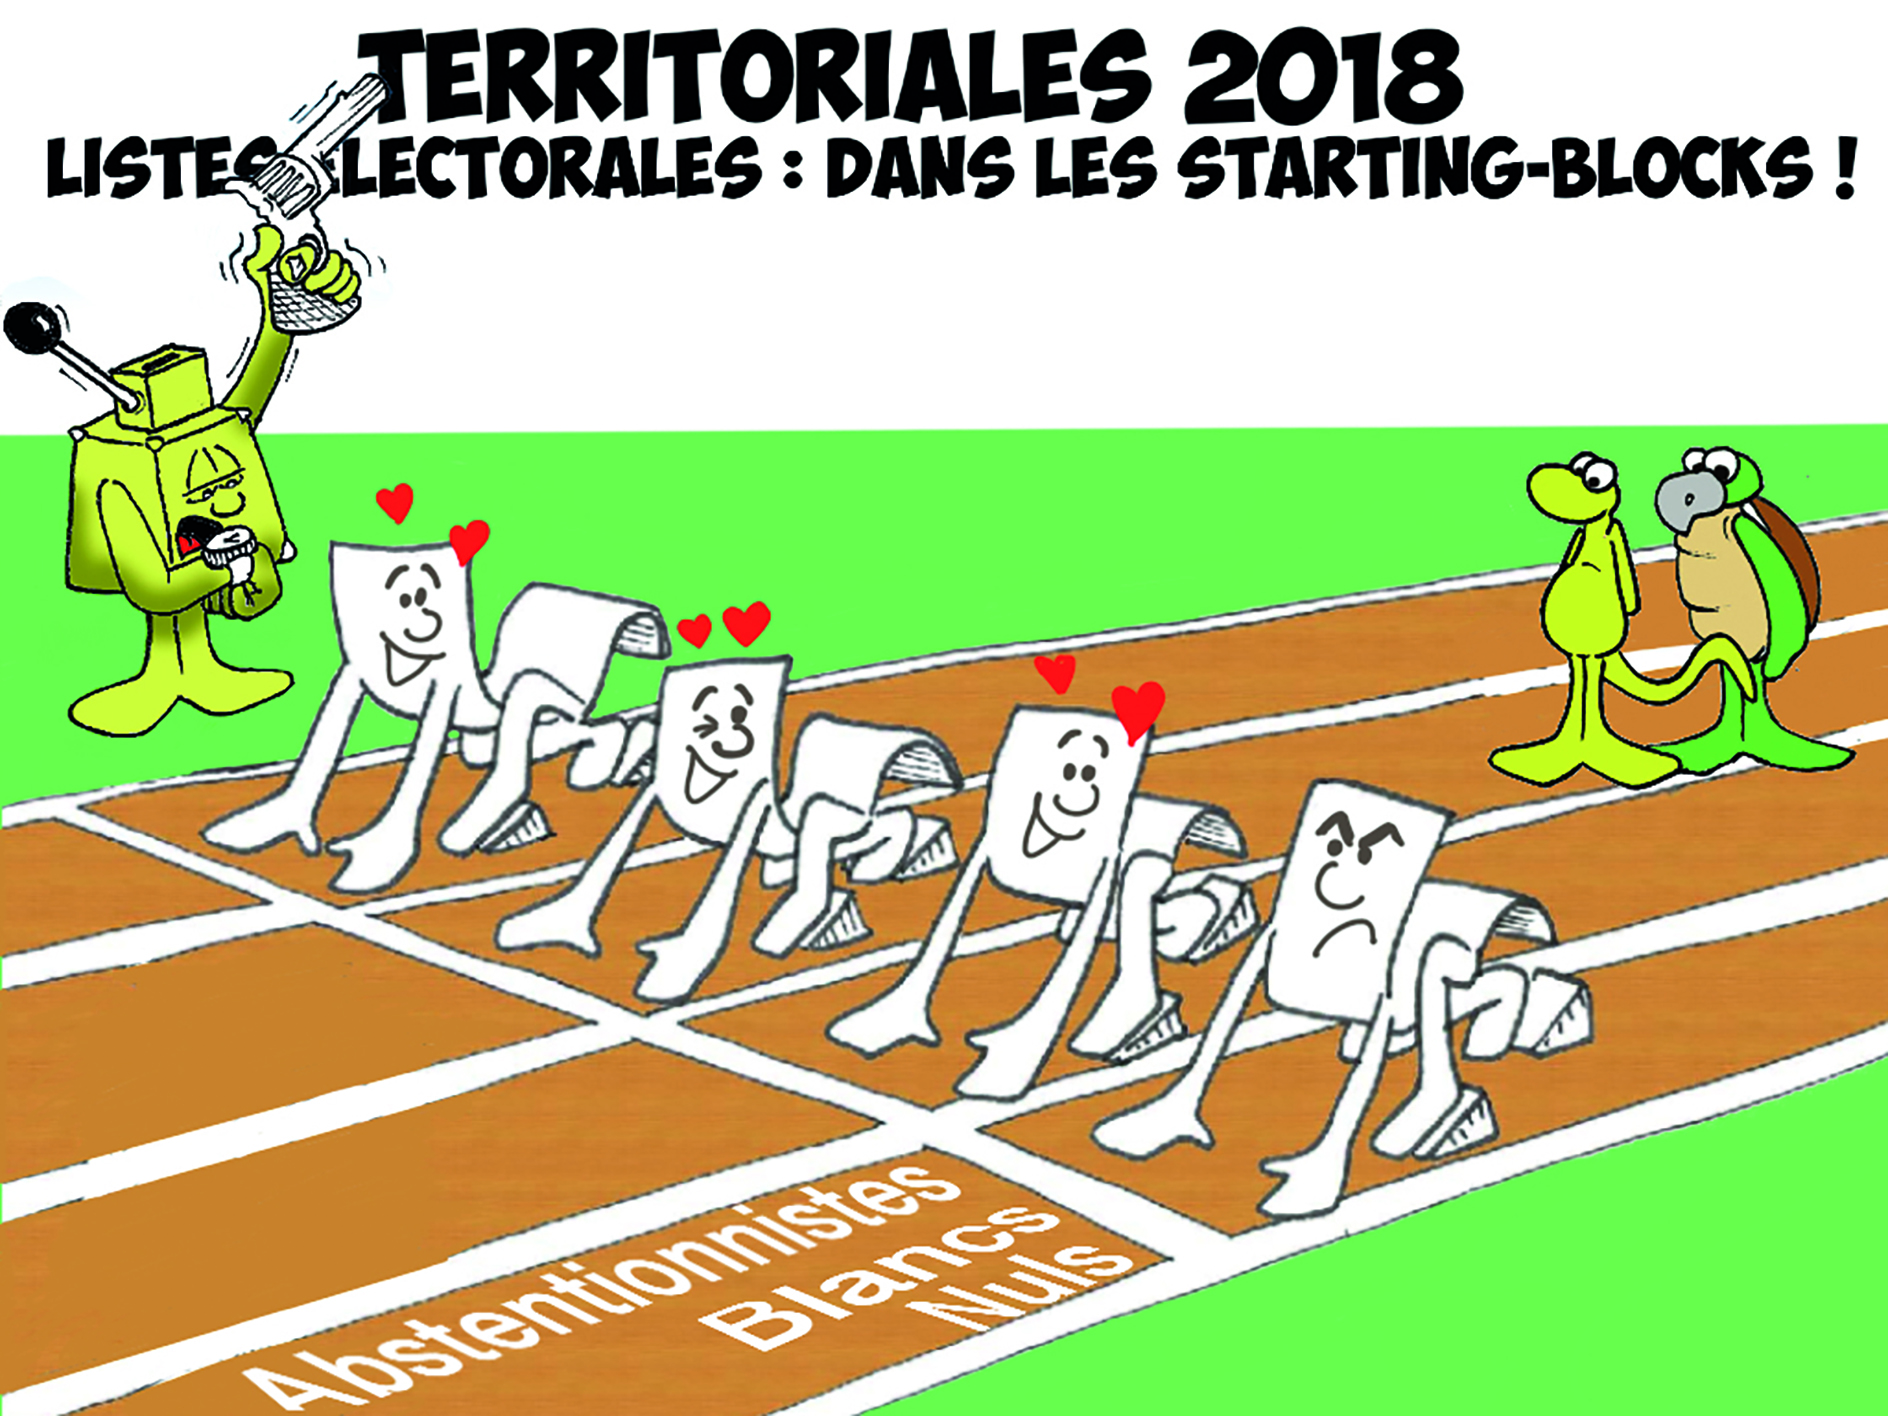 """ Dans les starting-blocks "" par Munoz"